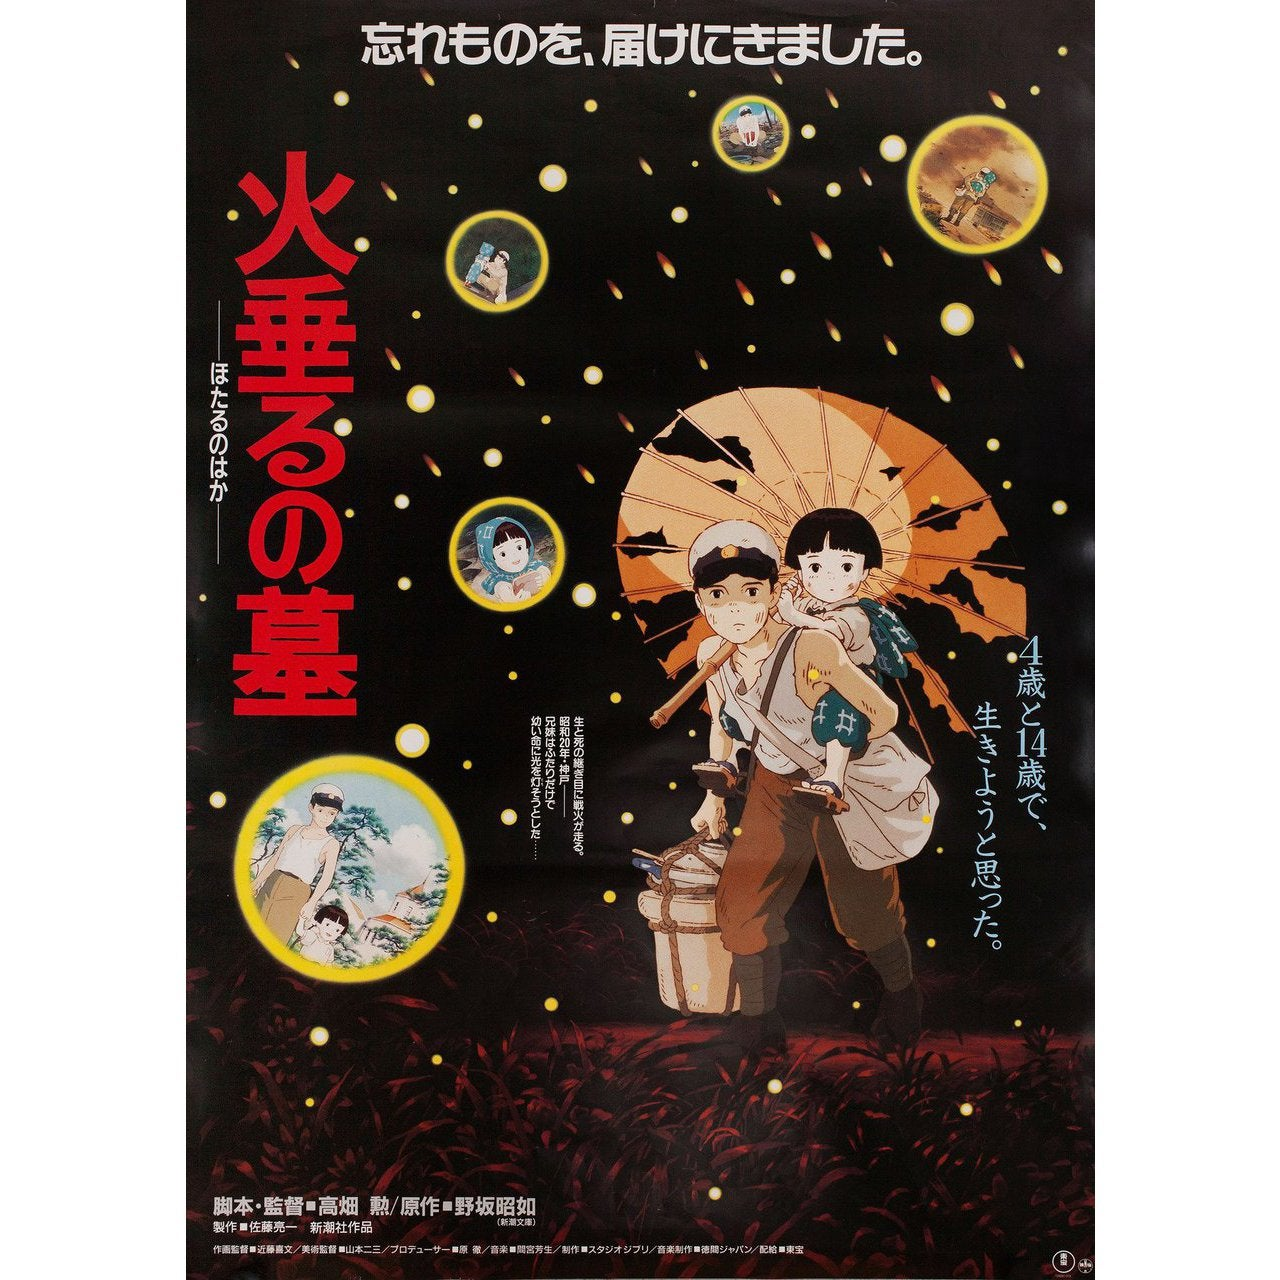 Grave Of The Fireflies 1988 Japanese B2 Film Poster At 1stdibs